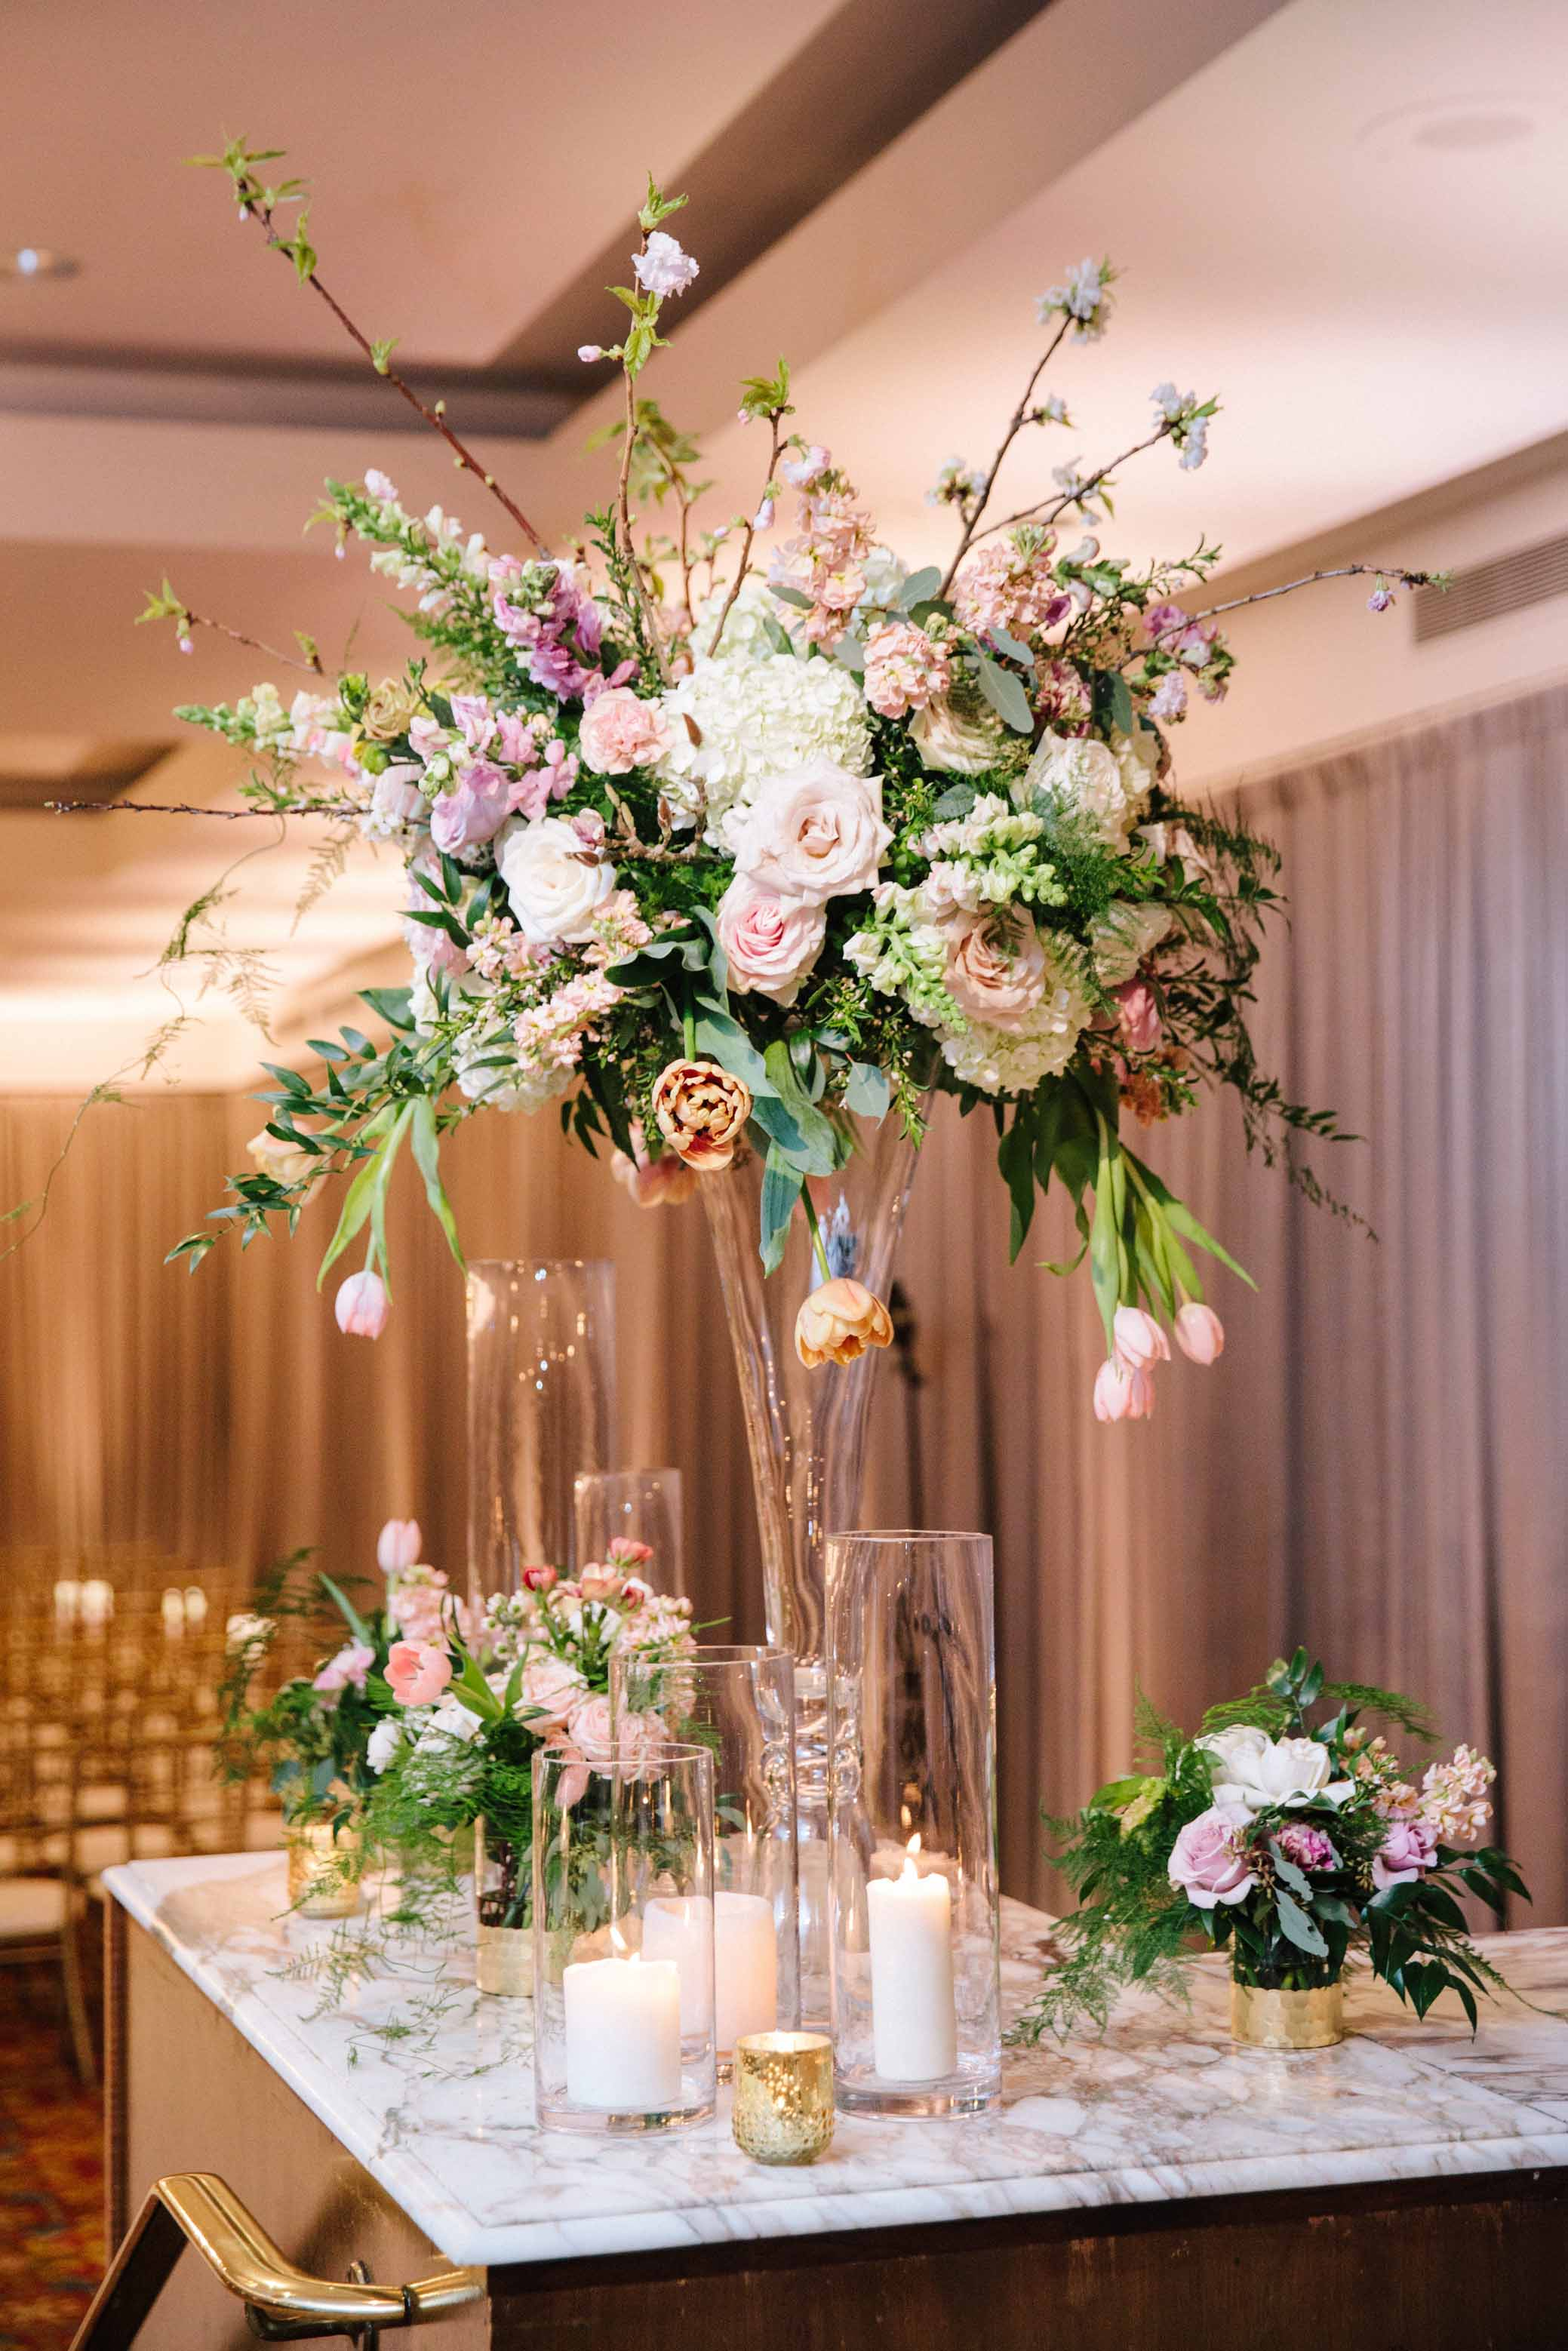 Large spring garden centerpiece in pink and cream on tall crystal vase surrounded by candles